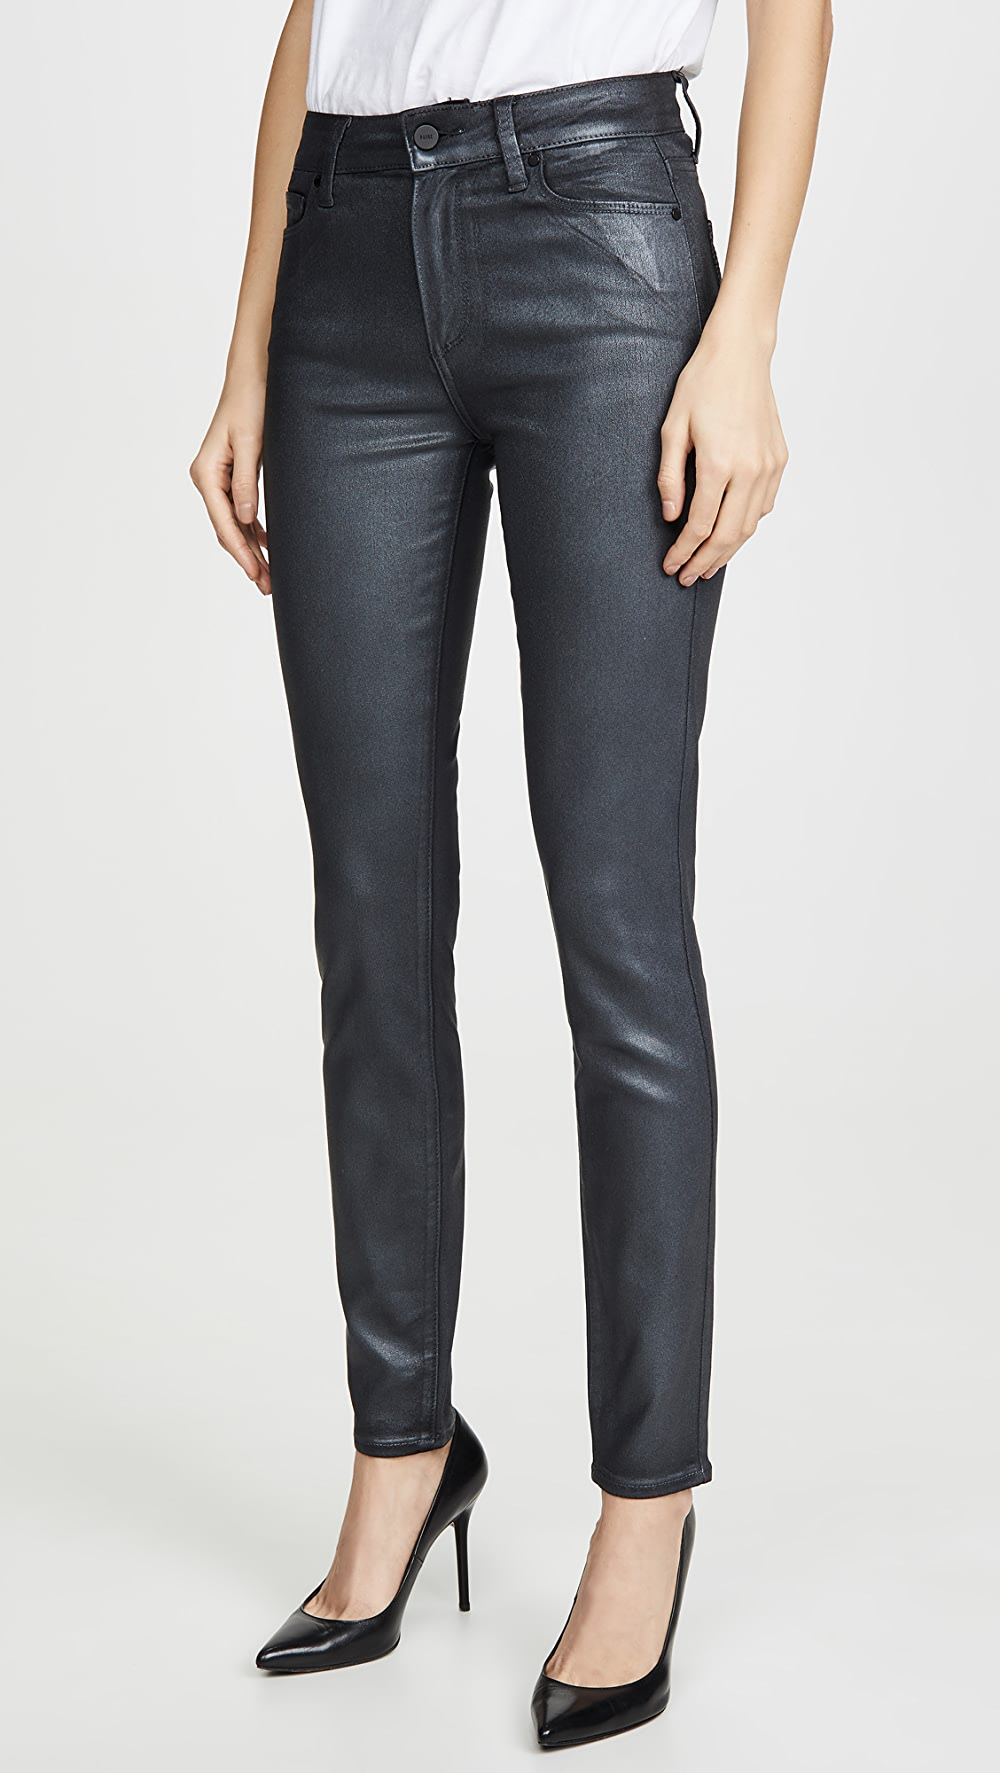 Cooperative Paige - Hoxton Ultra Skinny Jeans To Help Digest Greasy Food